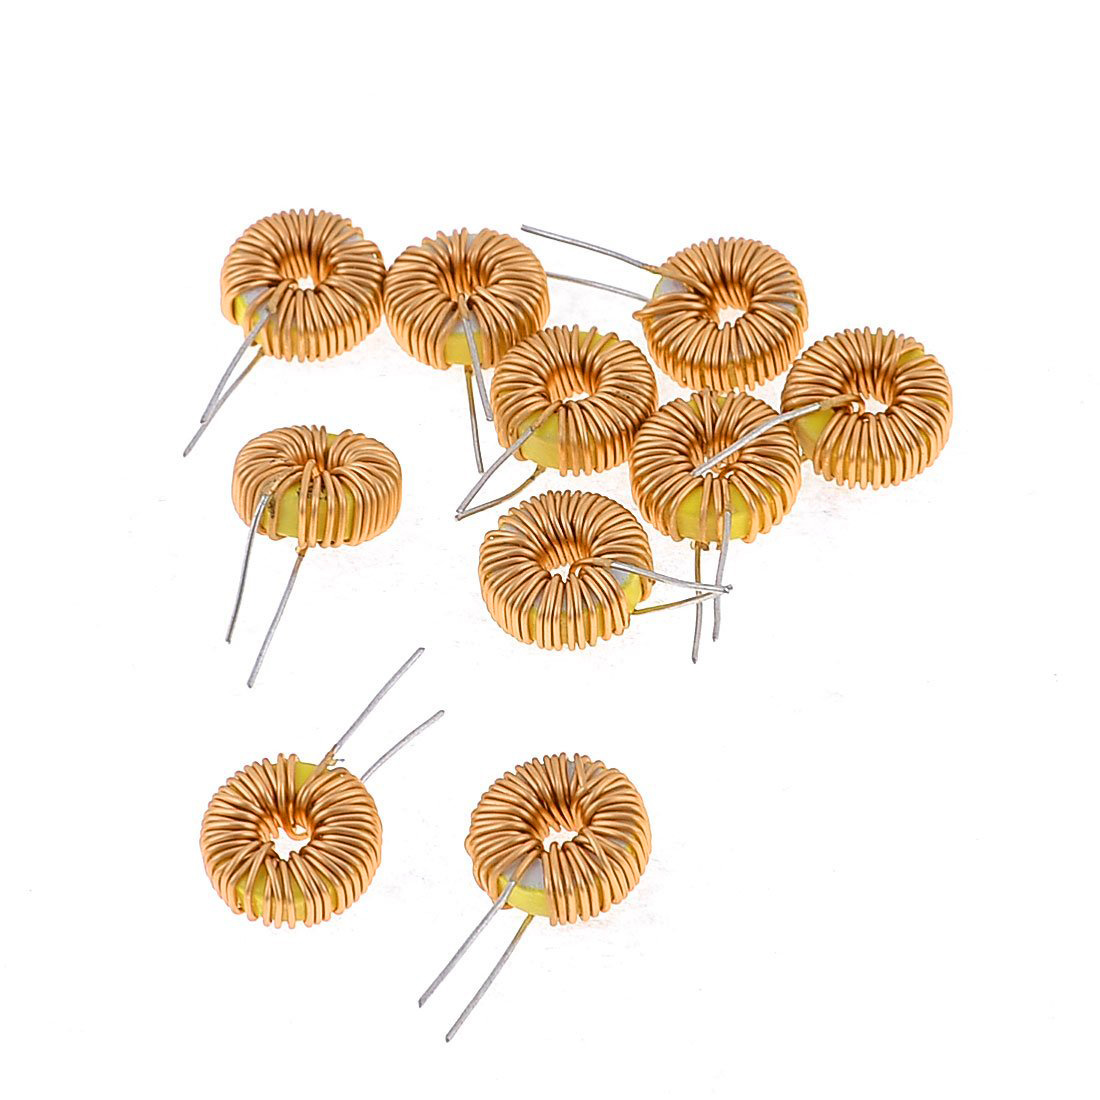 10 Pcs Toroid Core Inductor Wire Wind Wound 47uh 38mohm 3a Coil In Circuit For An Can Be Comprised Of Coils Inductors From Home Improvement On Alibaba Group